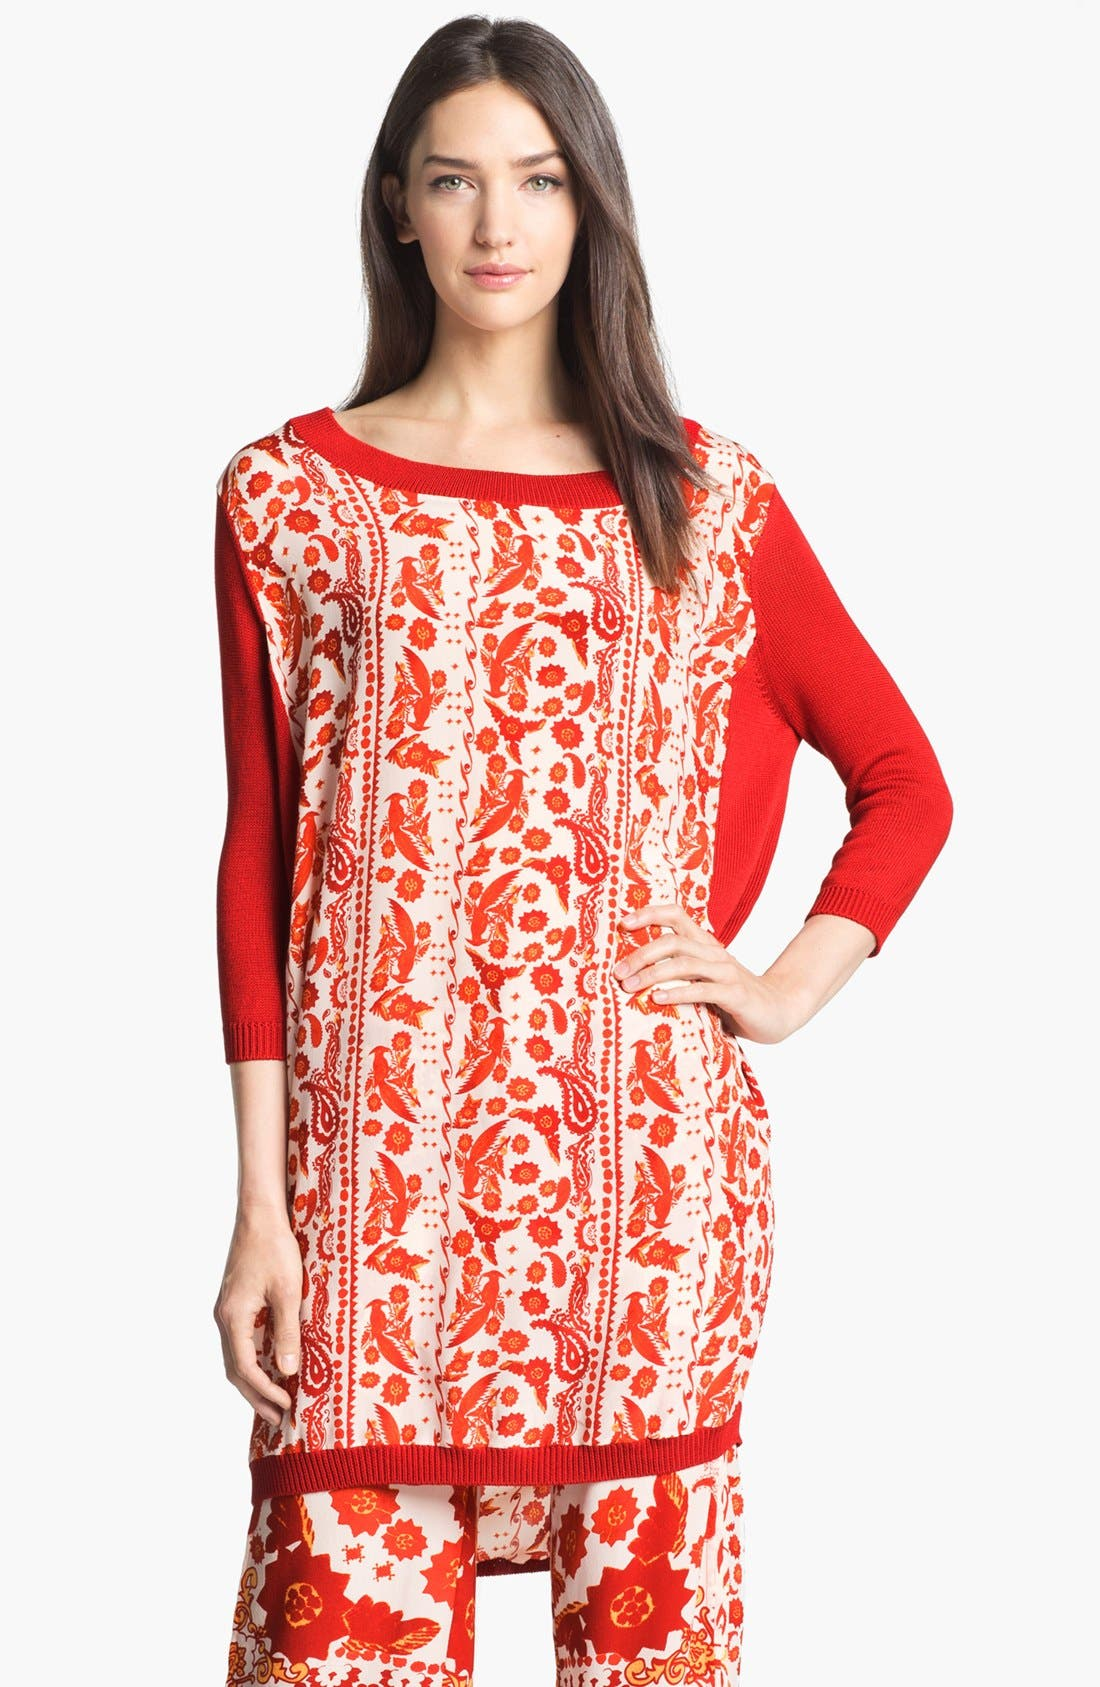 Main Image - Rebecca Minkoff 'Jai' Mixed Media Tunic Dress